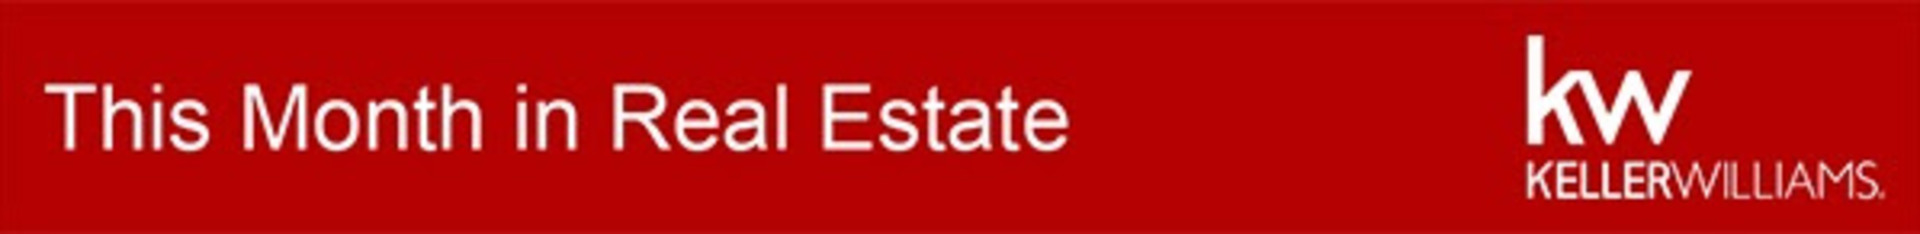 This Month in Real Estate eNewsletter – January 2019